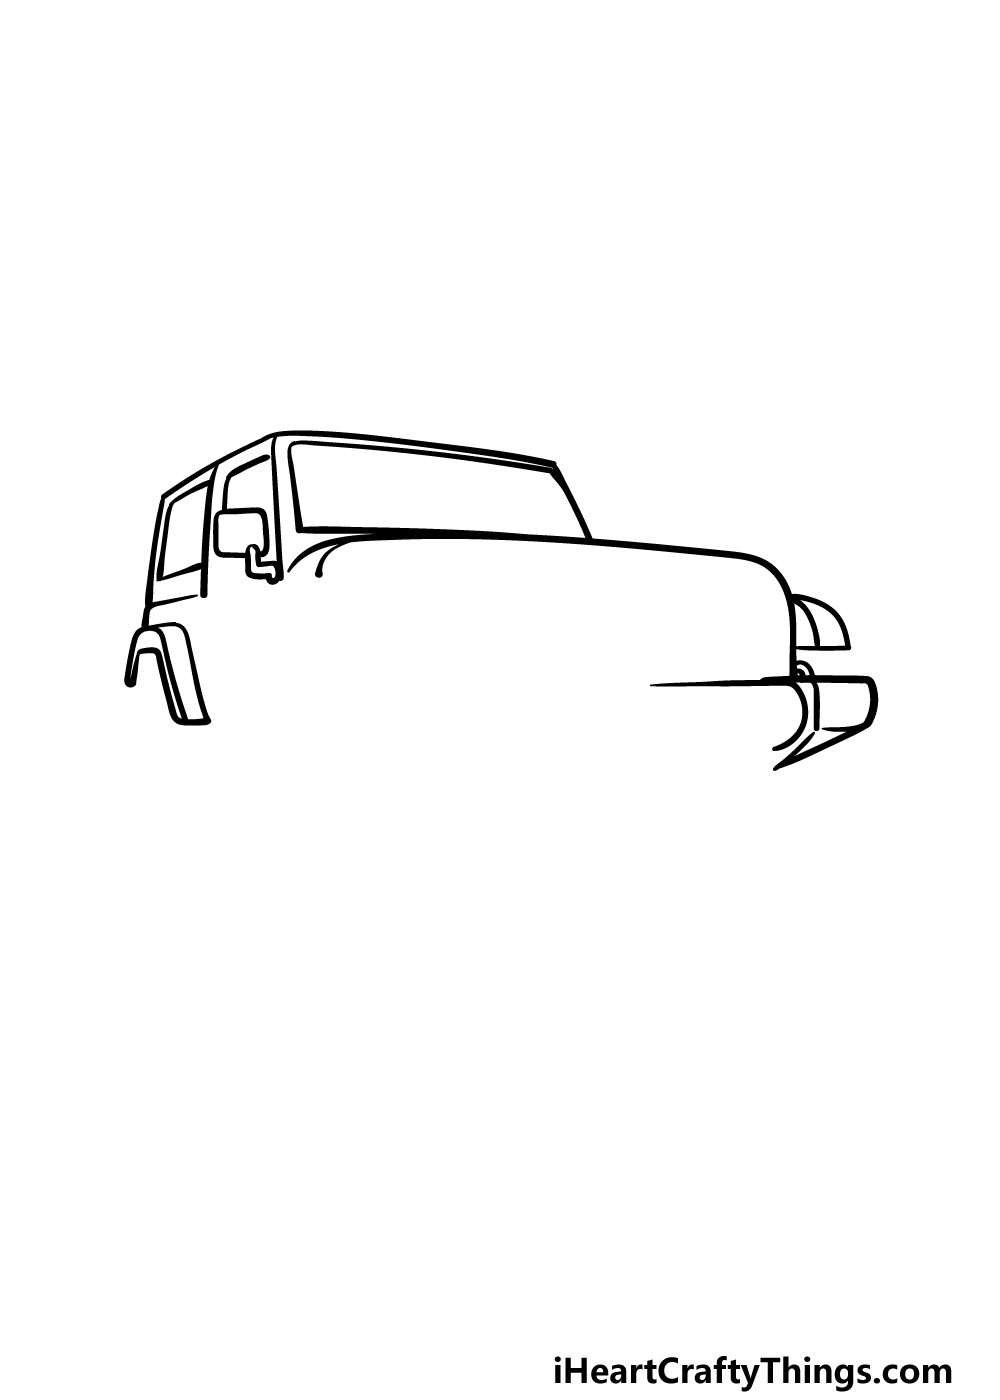 drawing a jeep step 3